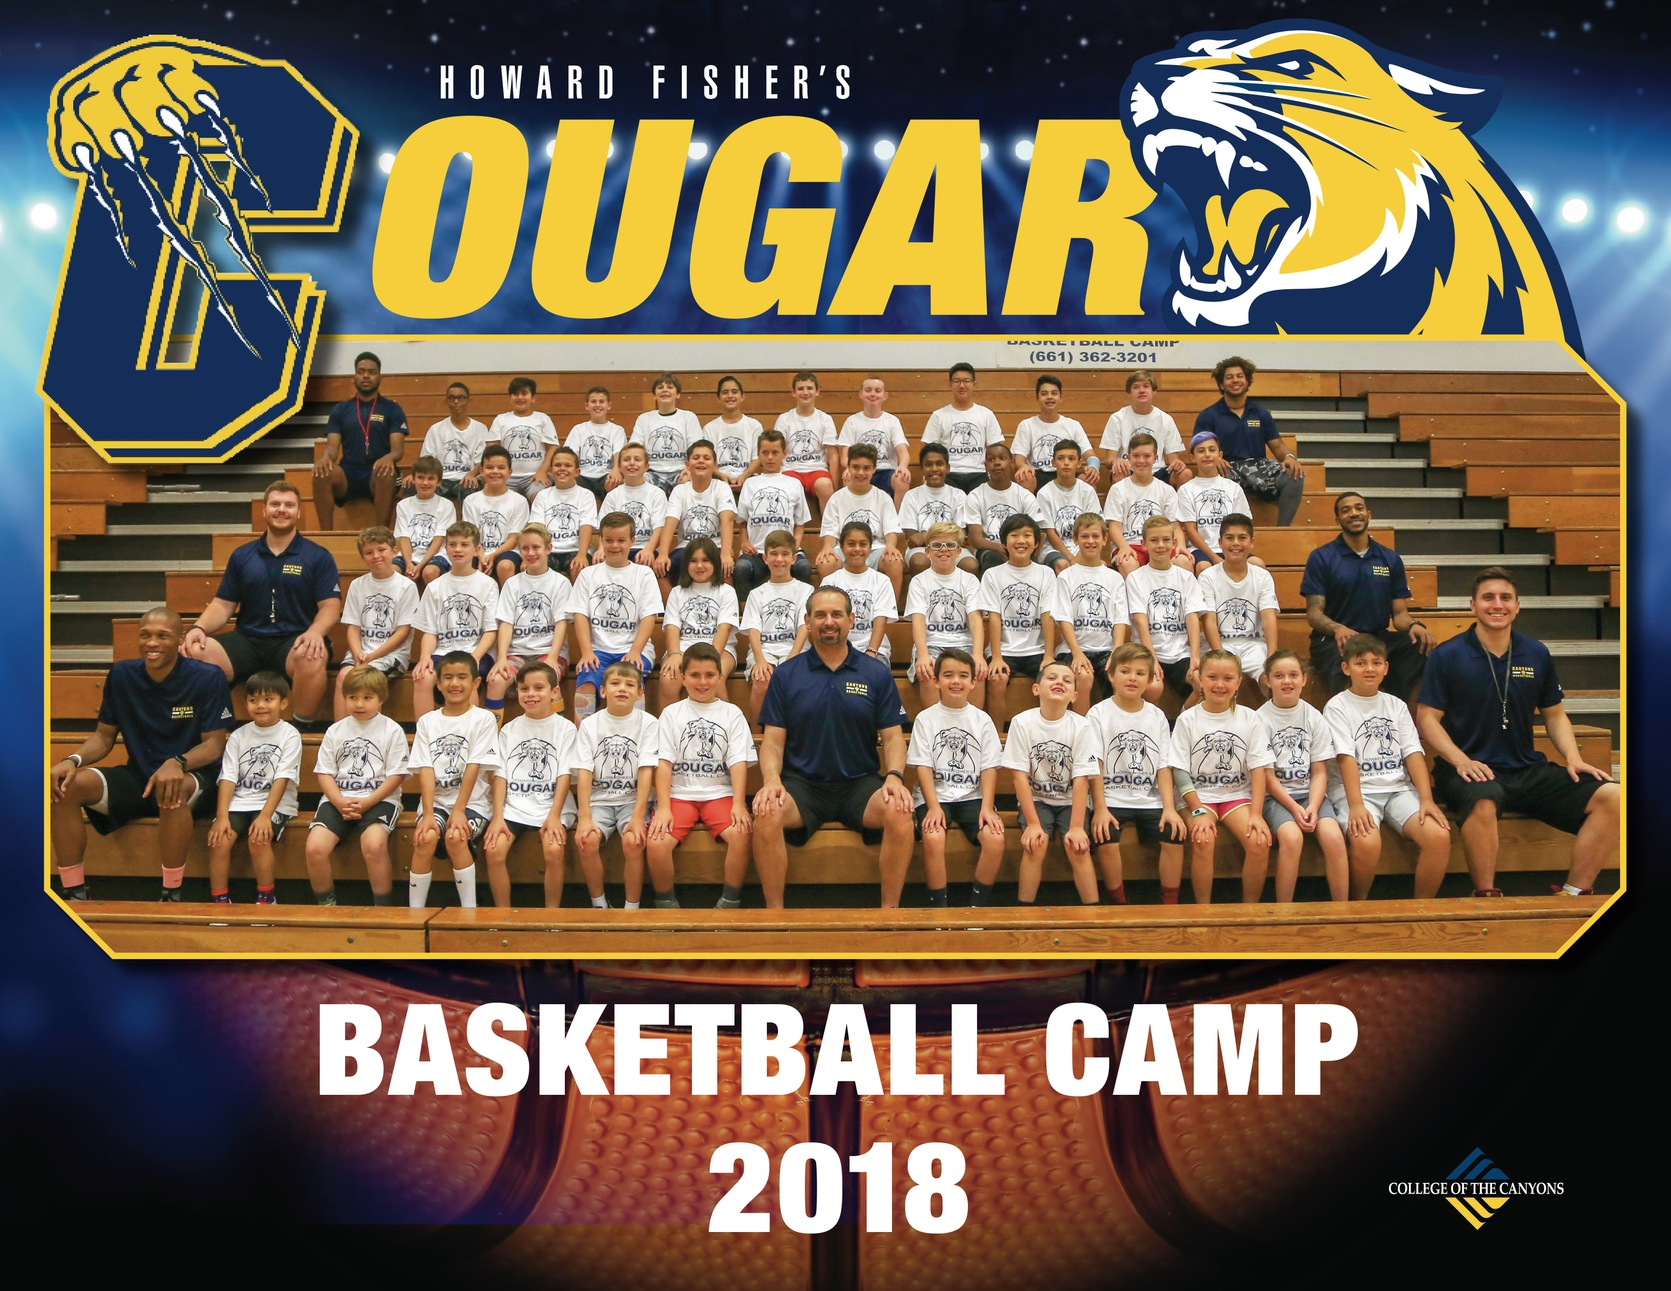 Howard Fisher Cougar Basketbal Camo 2018 group photo.